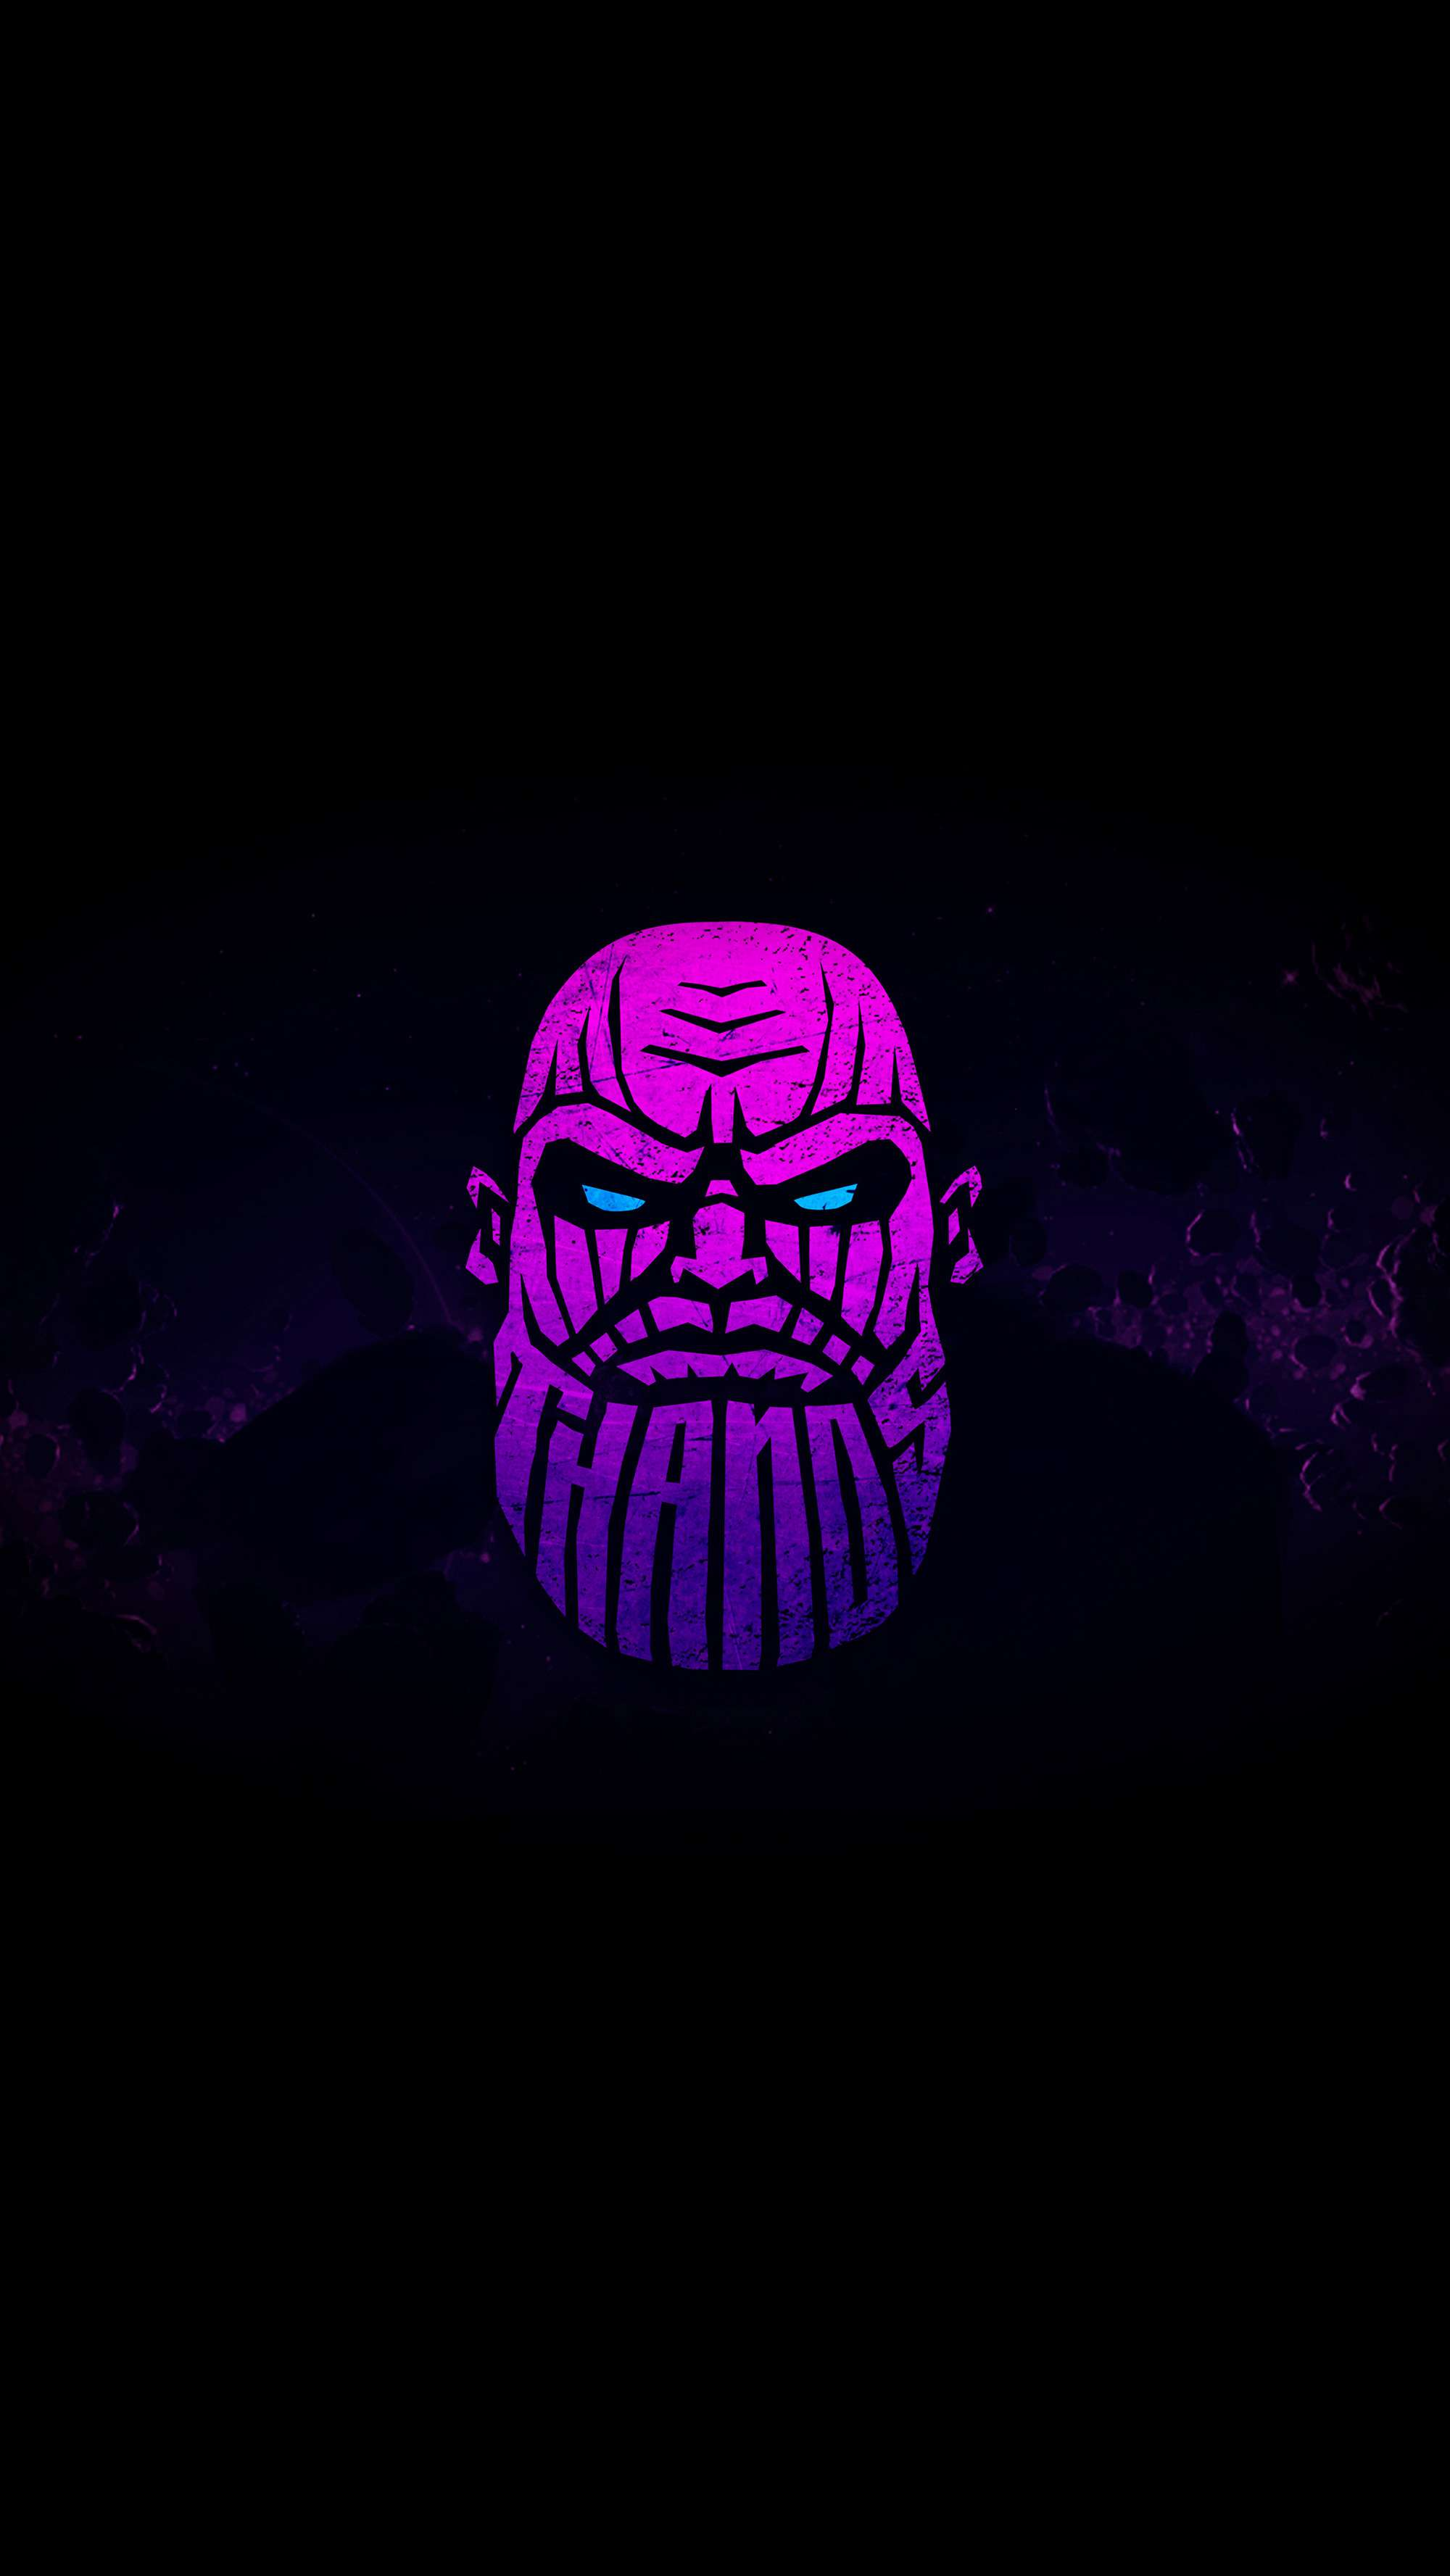 Amoled Thanos iPhone Wallpaper